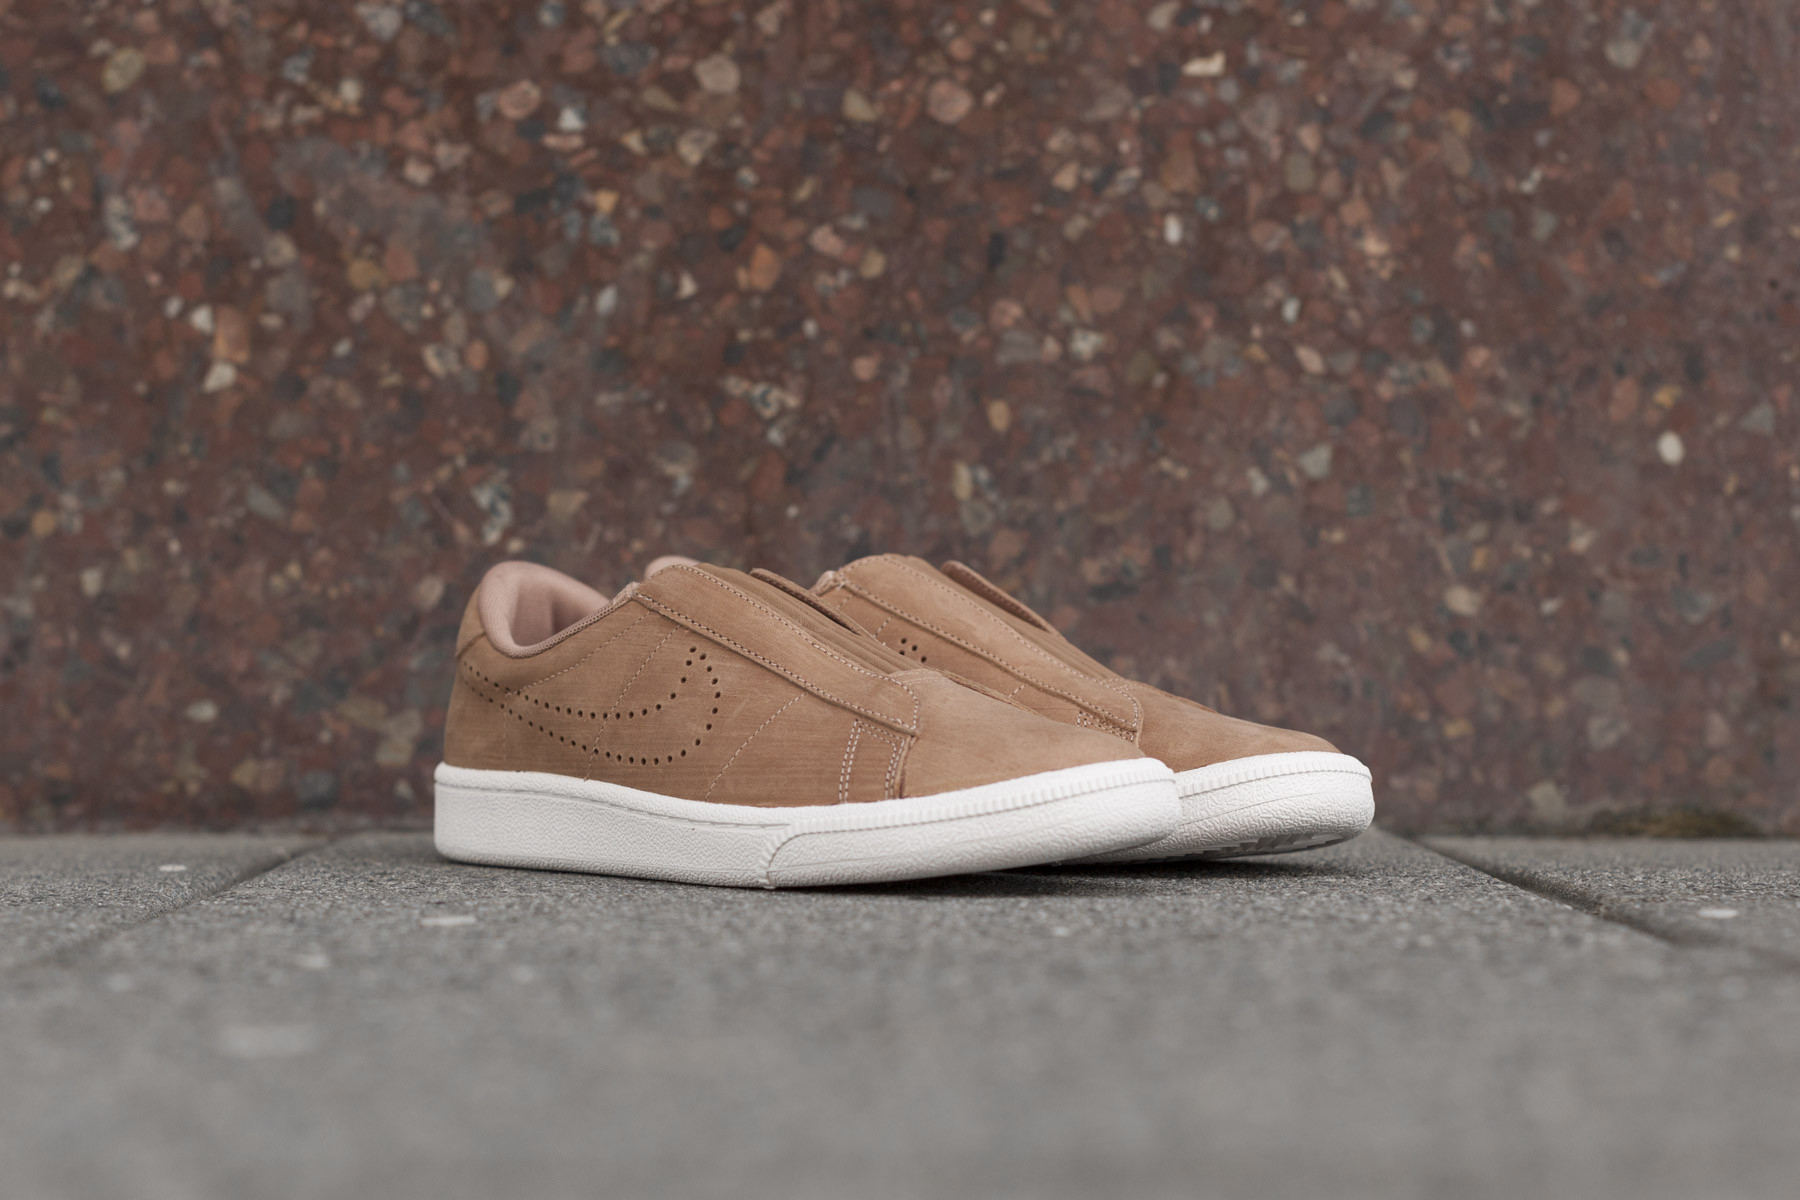 new styles 4fb50 a3639 Wmns Nike Tennis Classic Ease - Sneakers - Sneaker.no